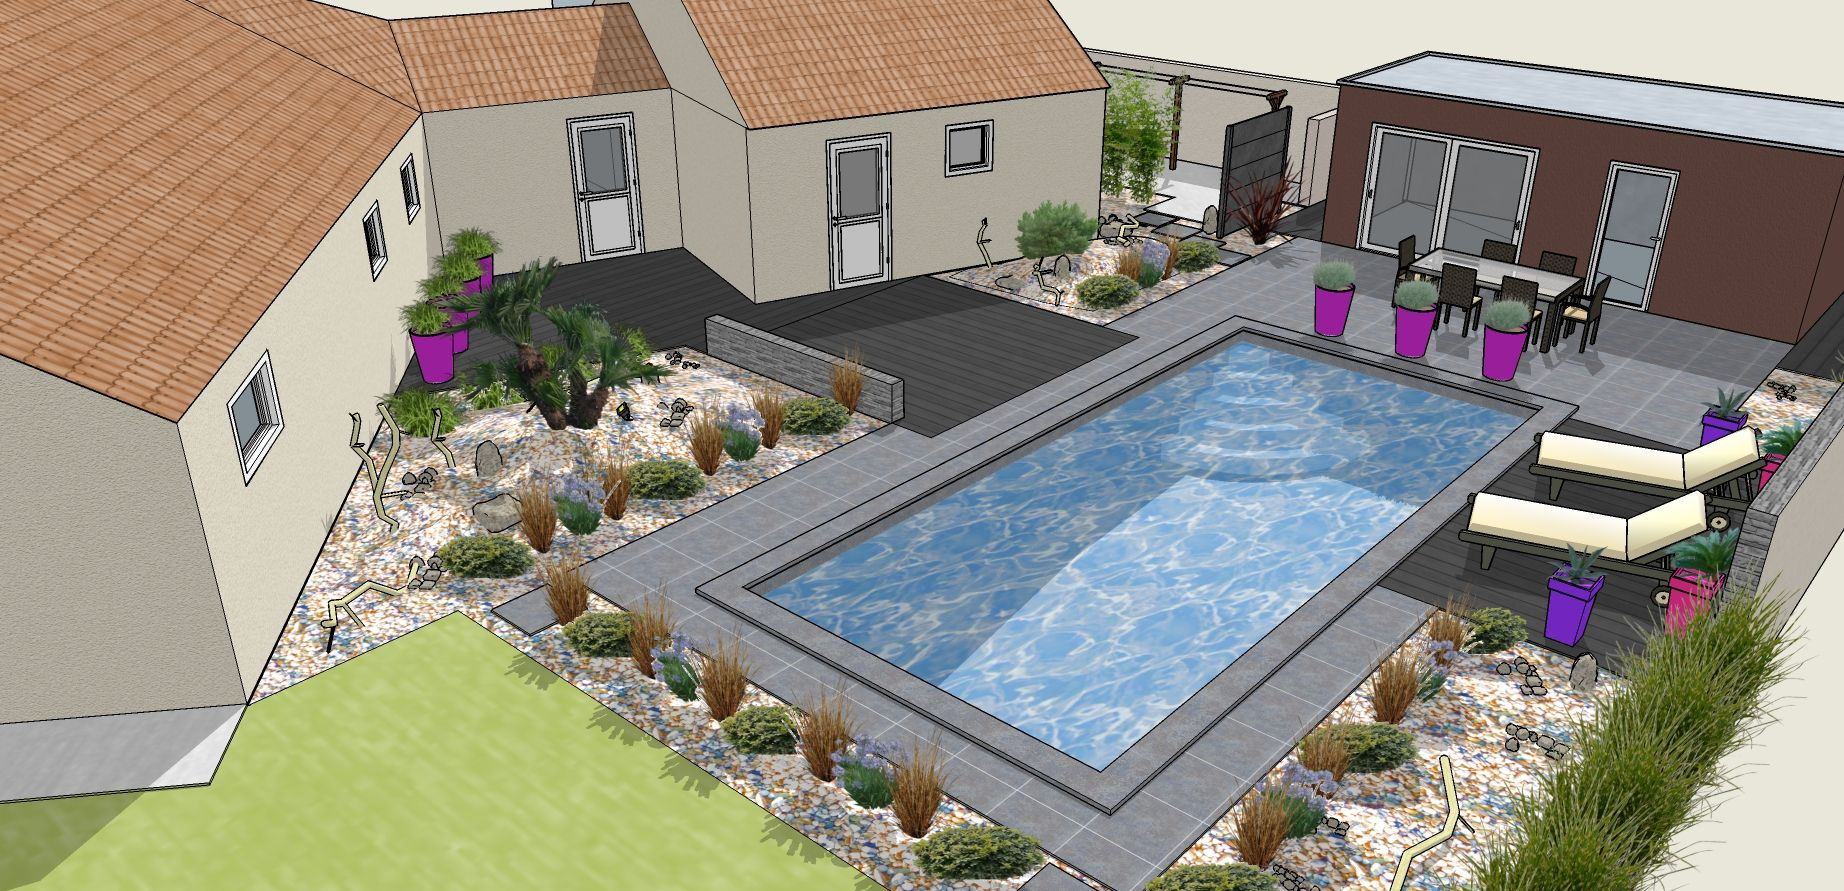 Am nagement paysager piscine creus e contemporain for Amenagement jardin 100m2